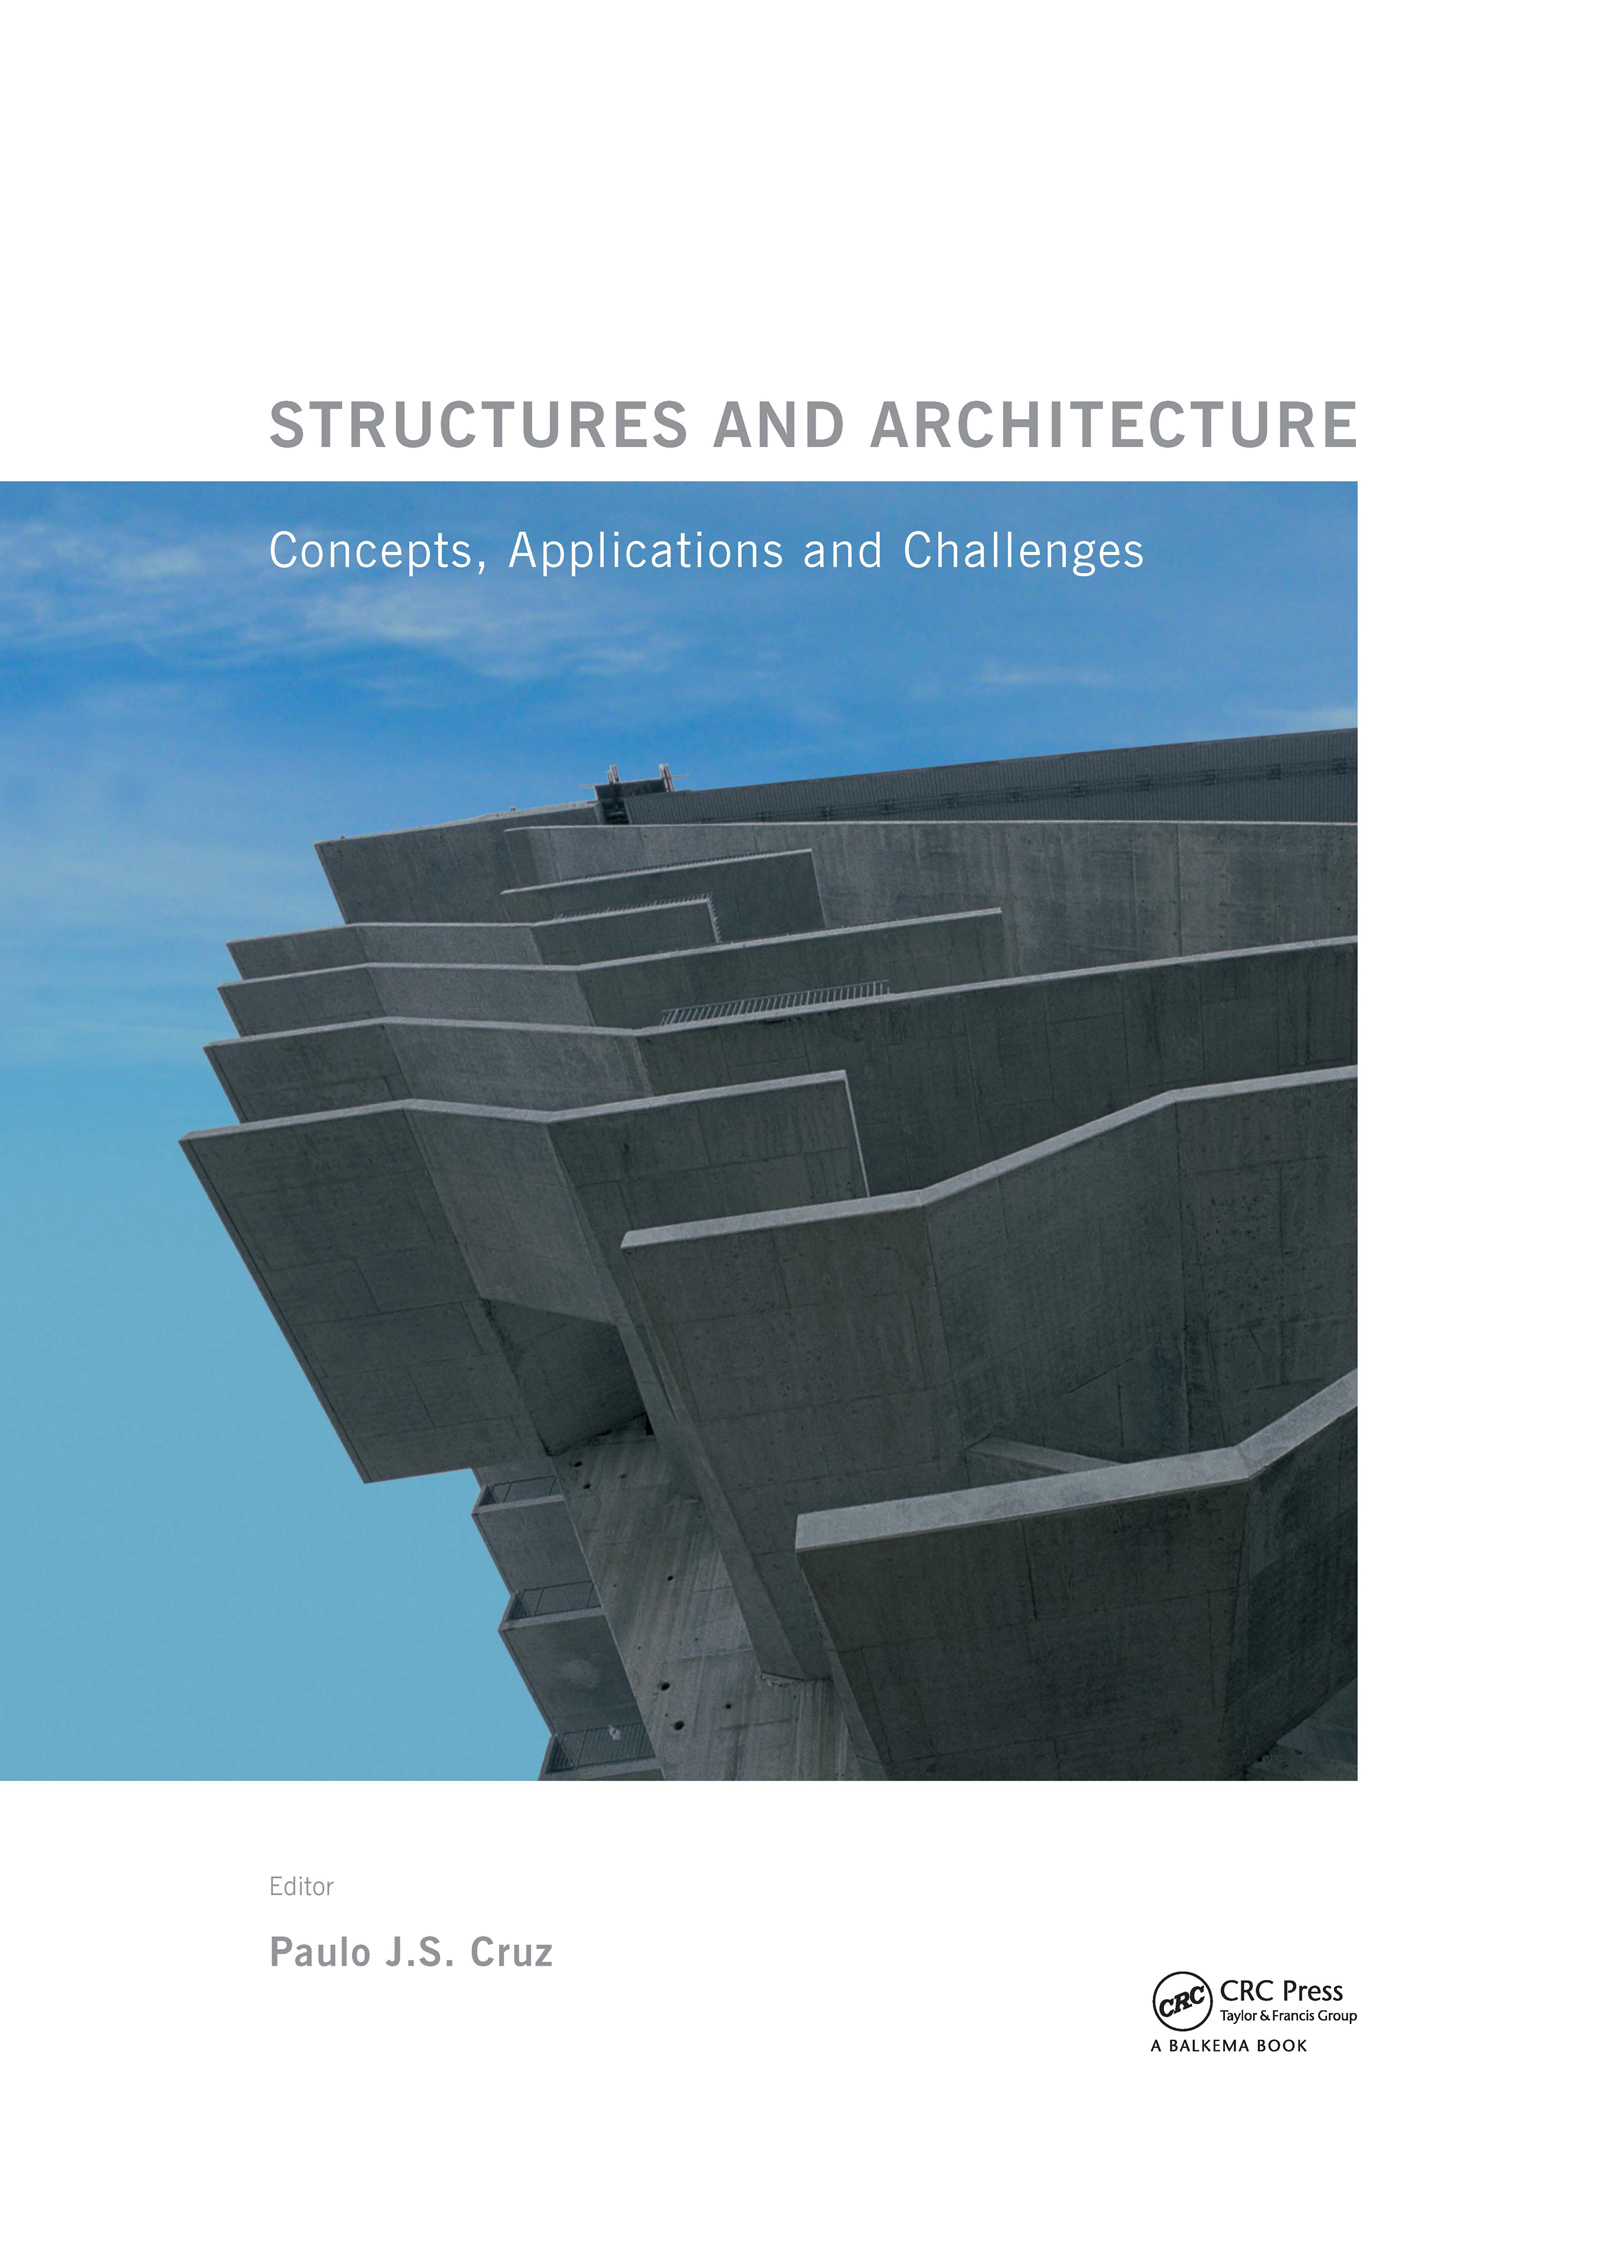 Structures and Architecture: New concepts, applications and challenges, 1st Edition (Pack - Book and CD) book cover